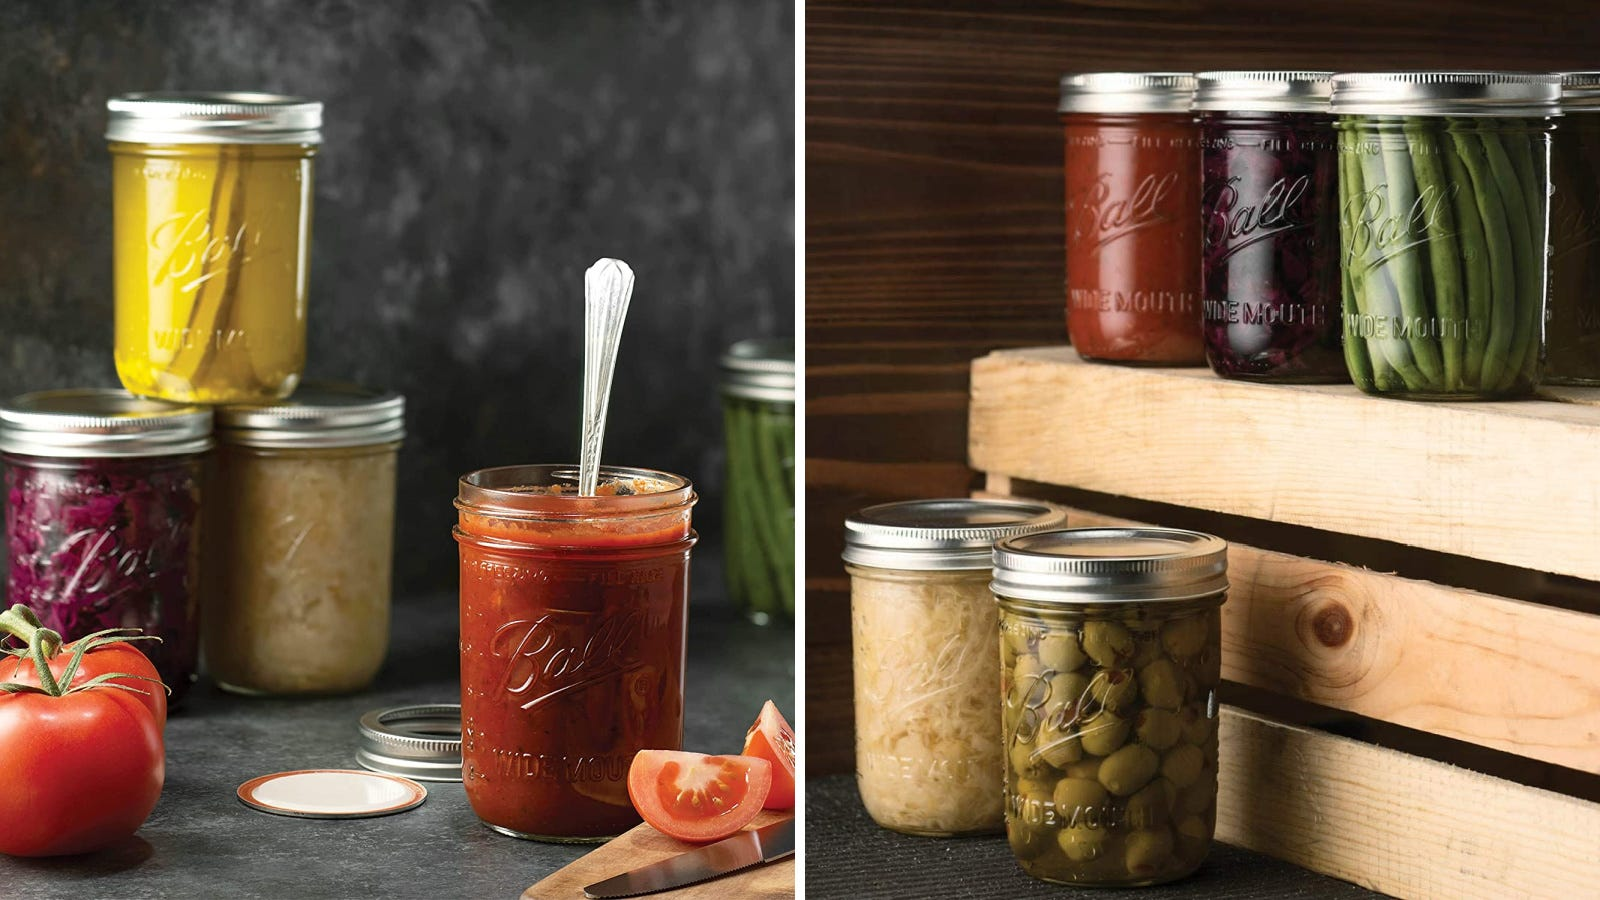 Two images featuring Ball mason jars filled with various pickled ingredients.